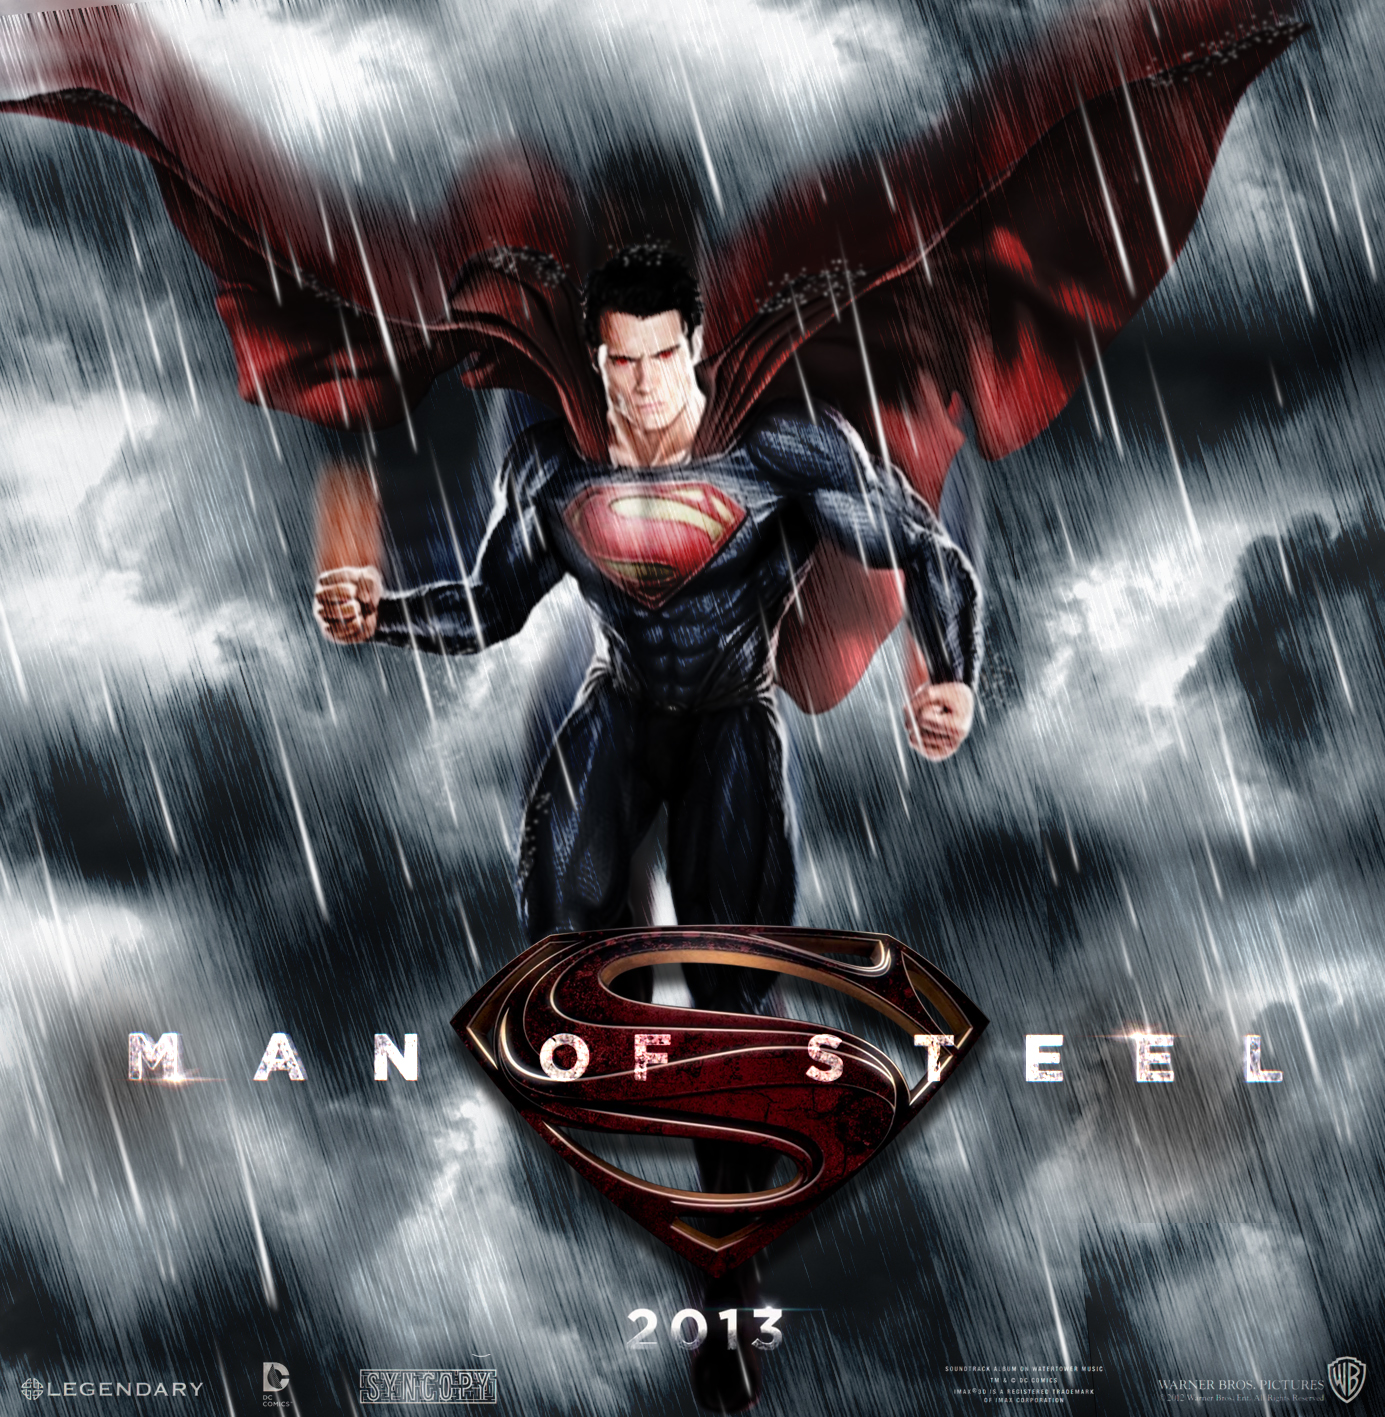 Man of Steel man of steelMan Of Steel